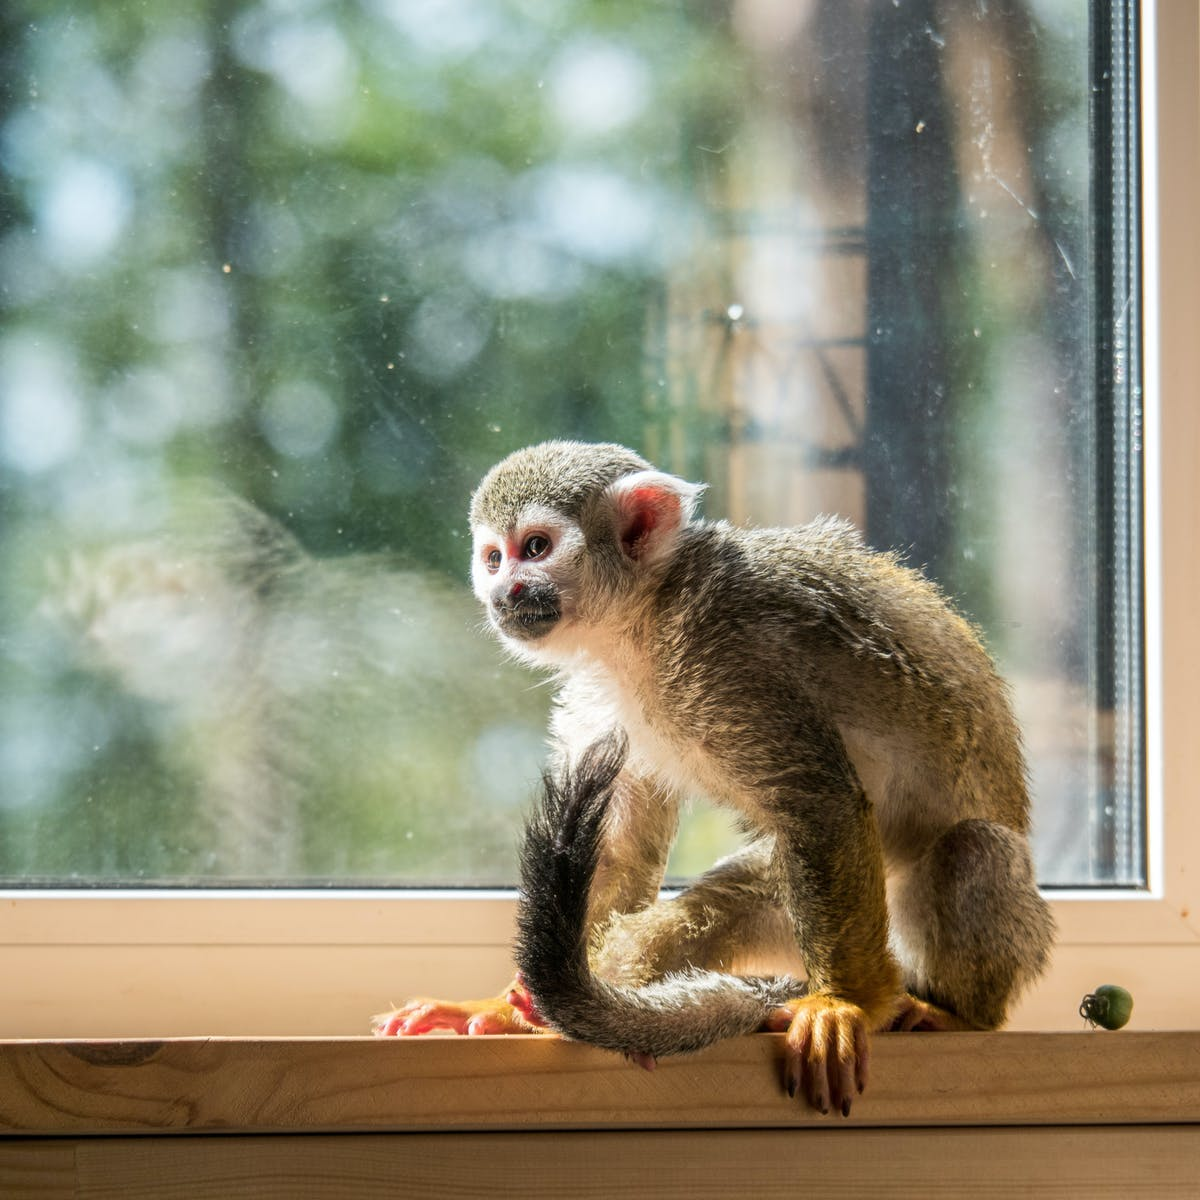 Keeping Monkeys As Pets Is Extraordinarily Cruel A Ban Is Long Overdue